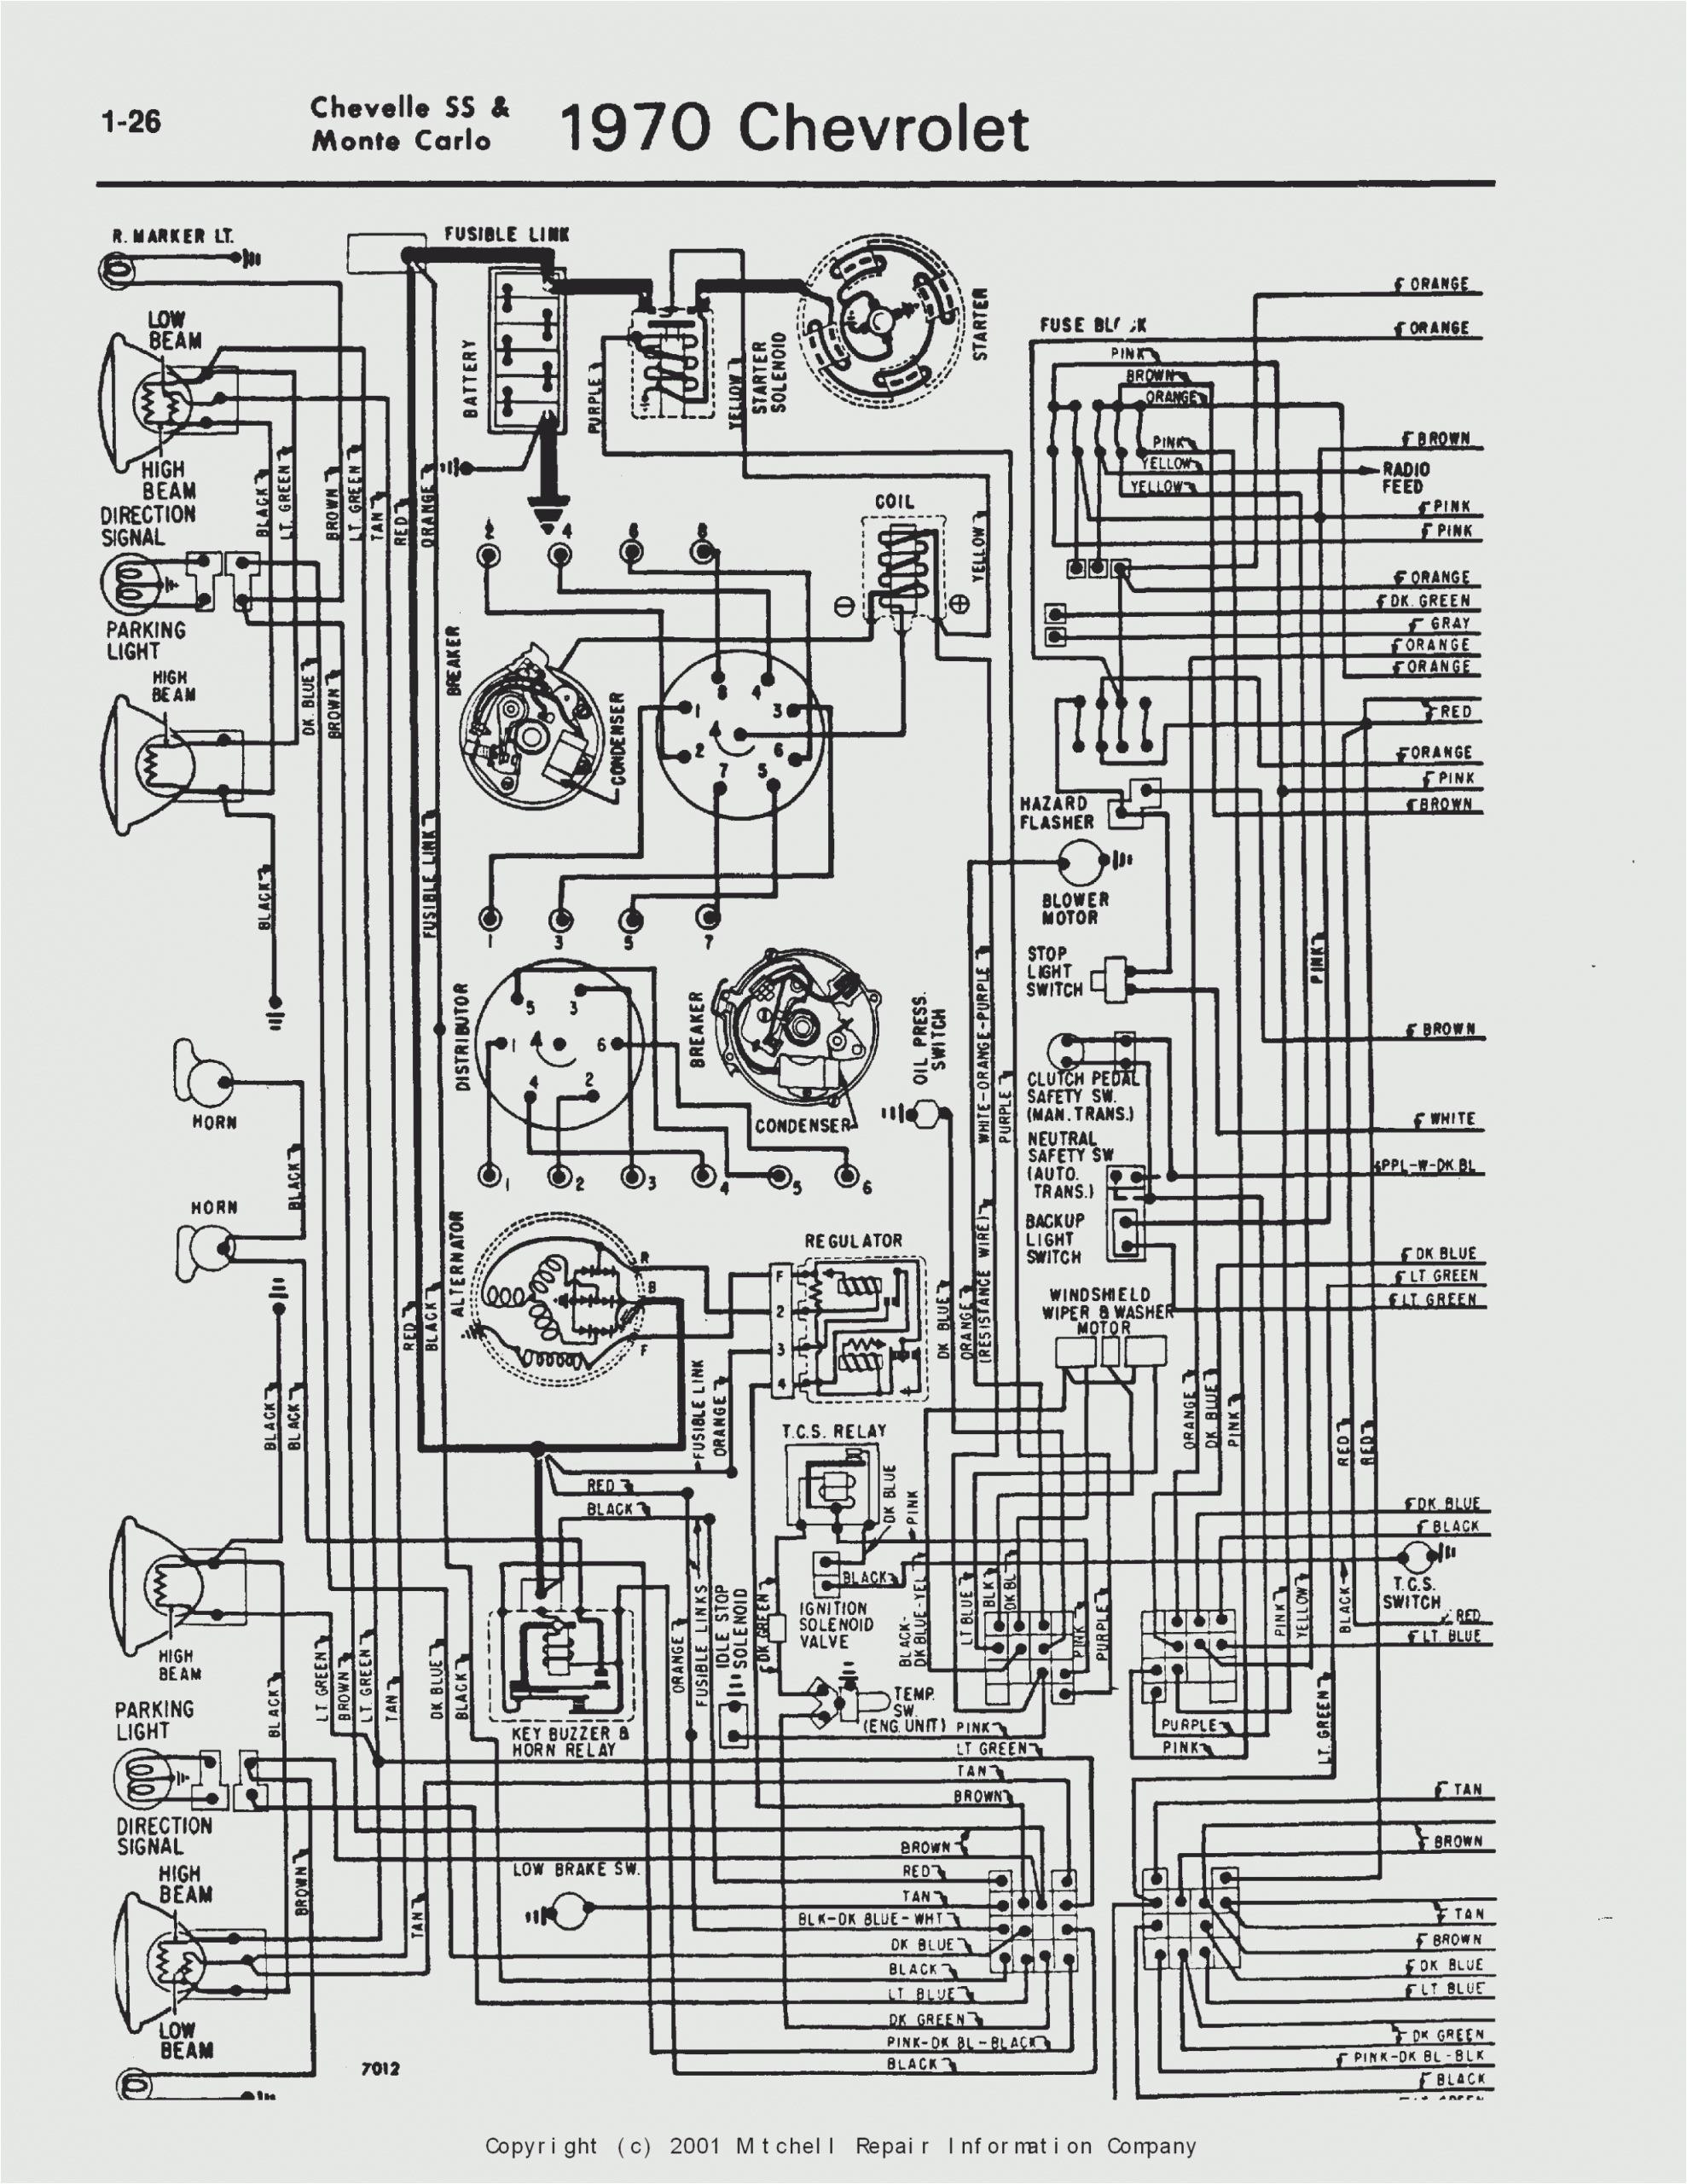 1970 Chevelle Engine Wiring Harness Diagram 1972 Chevelle Wiper Motor Wiring Diagram Kuiyt Fuse10